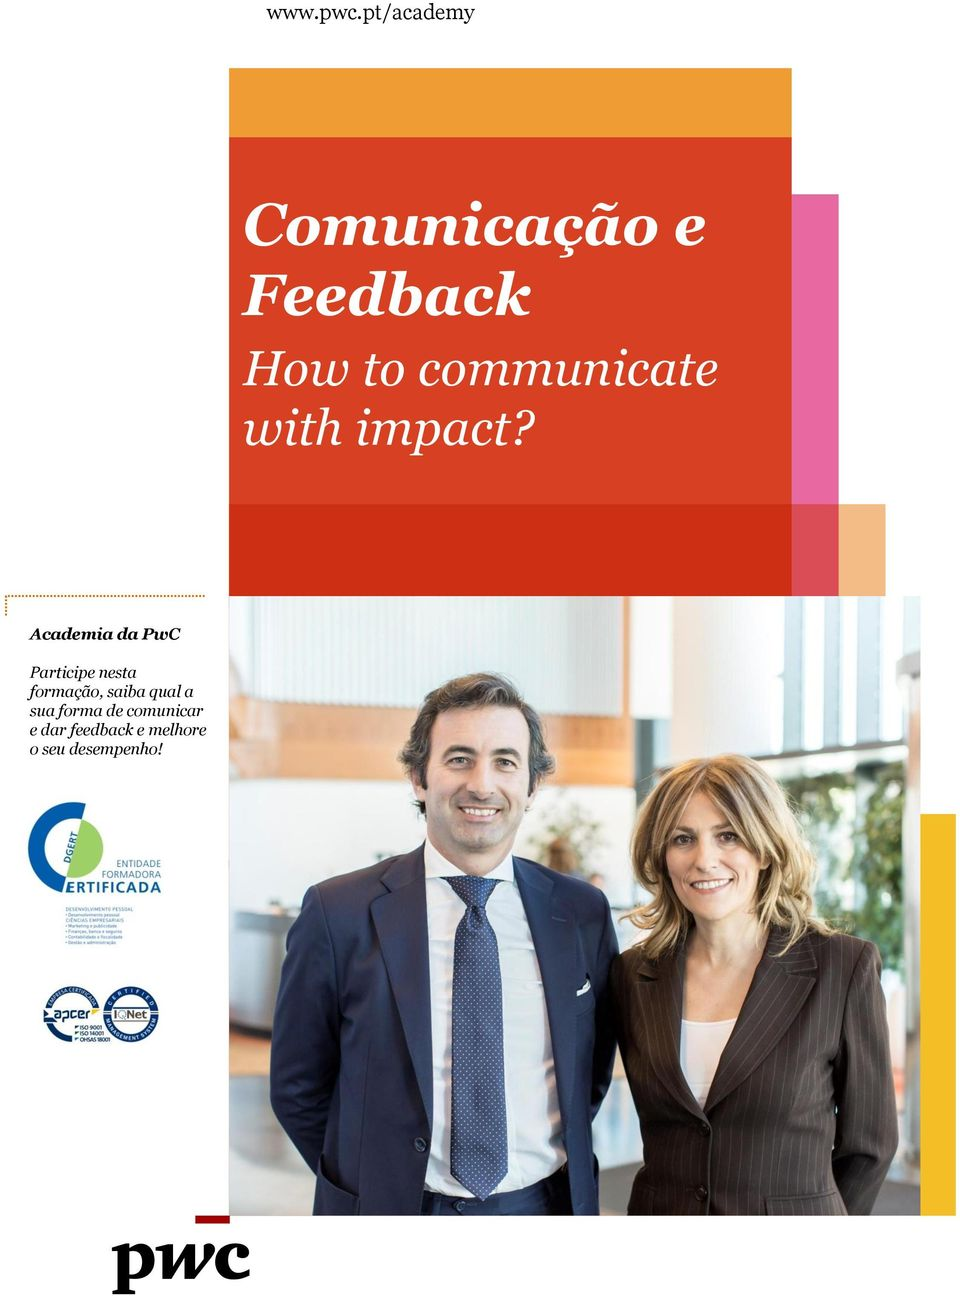 communicate with impact?